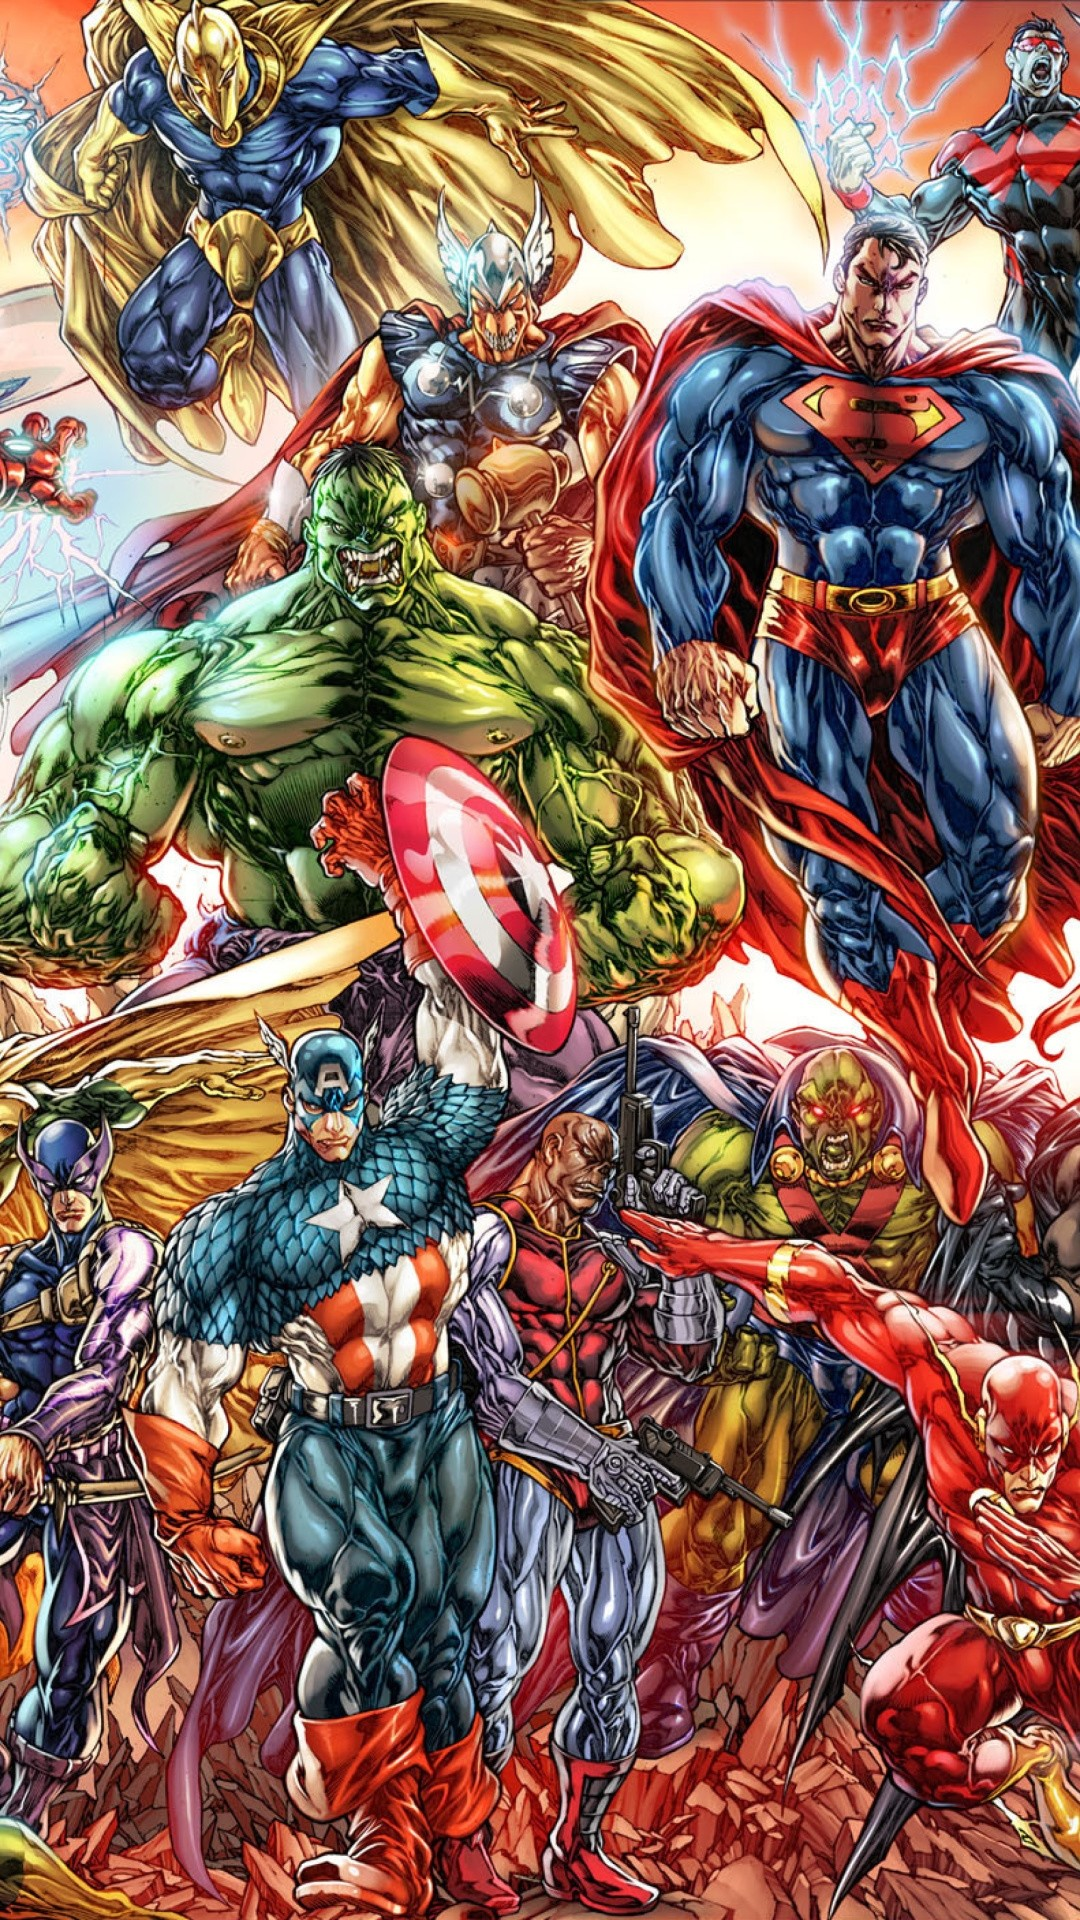 1080x1920 ... ilikewallpaper_com_1024 Marvel Iphone Wallpaper Marvel Wallpaper for Iphone Free Download .